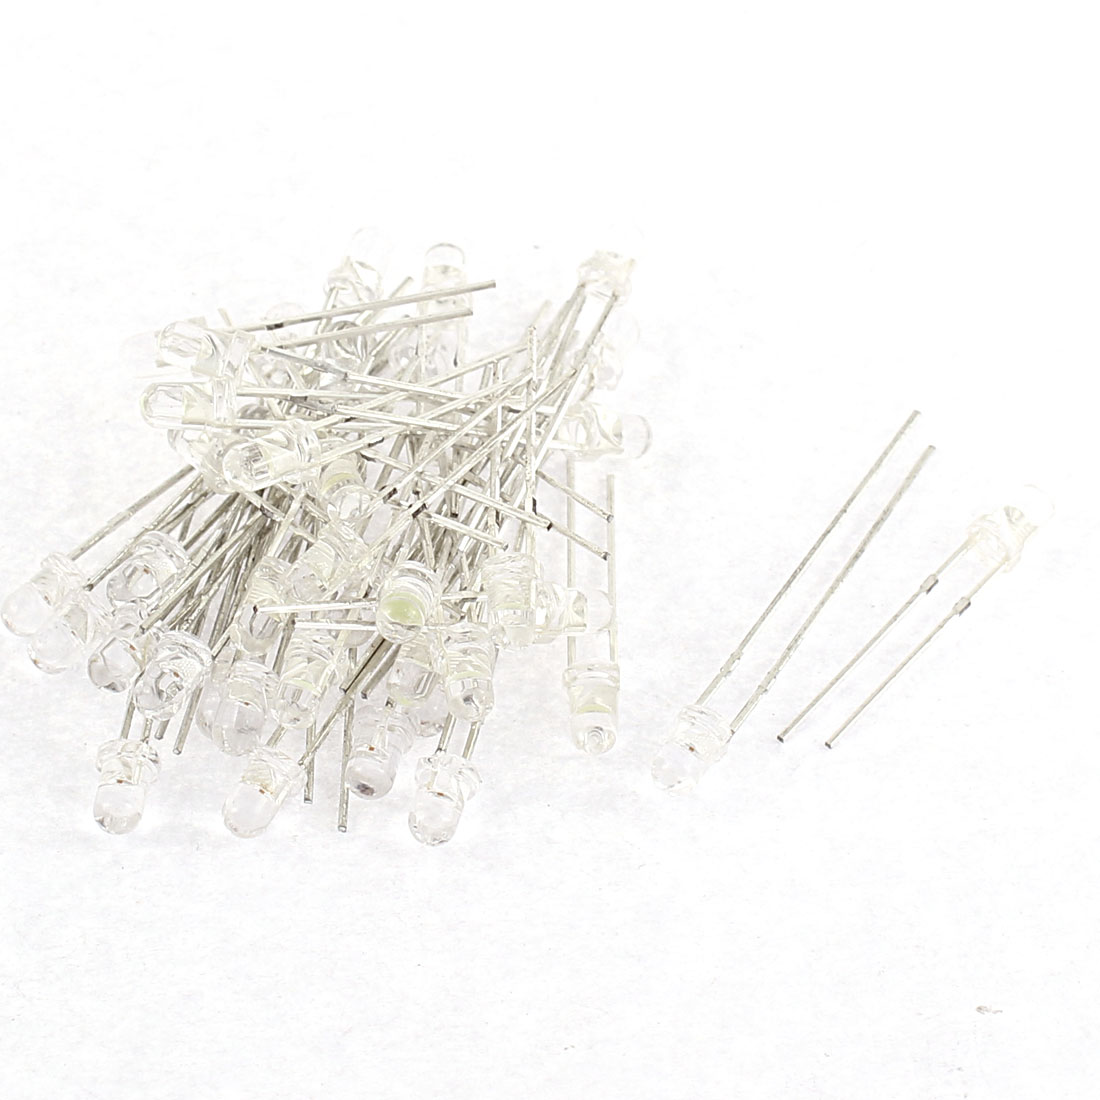 40pcs 3mm Green White Light Diffused Emitting Diode LEDs Bulds